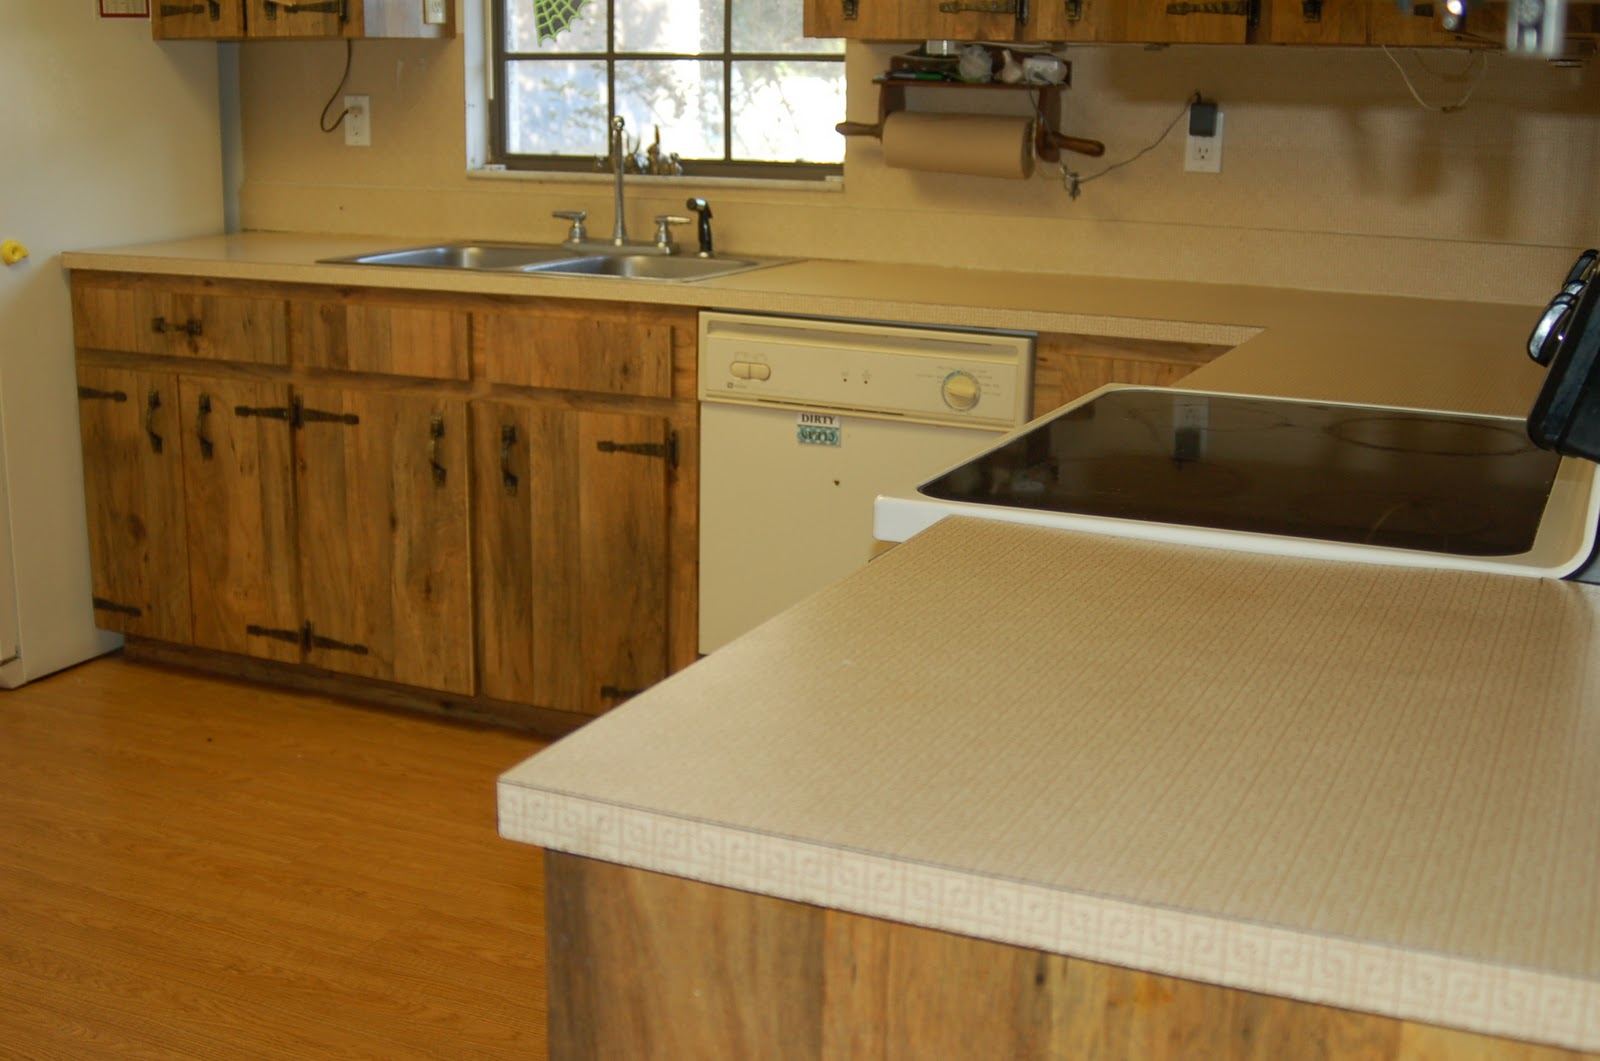 Giani granite paint review remodel on a budget for Giani granite